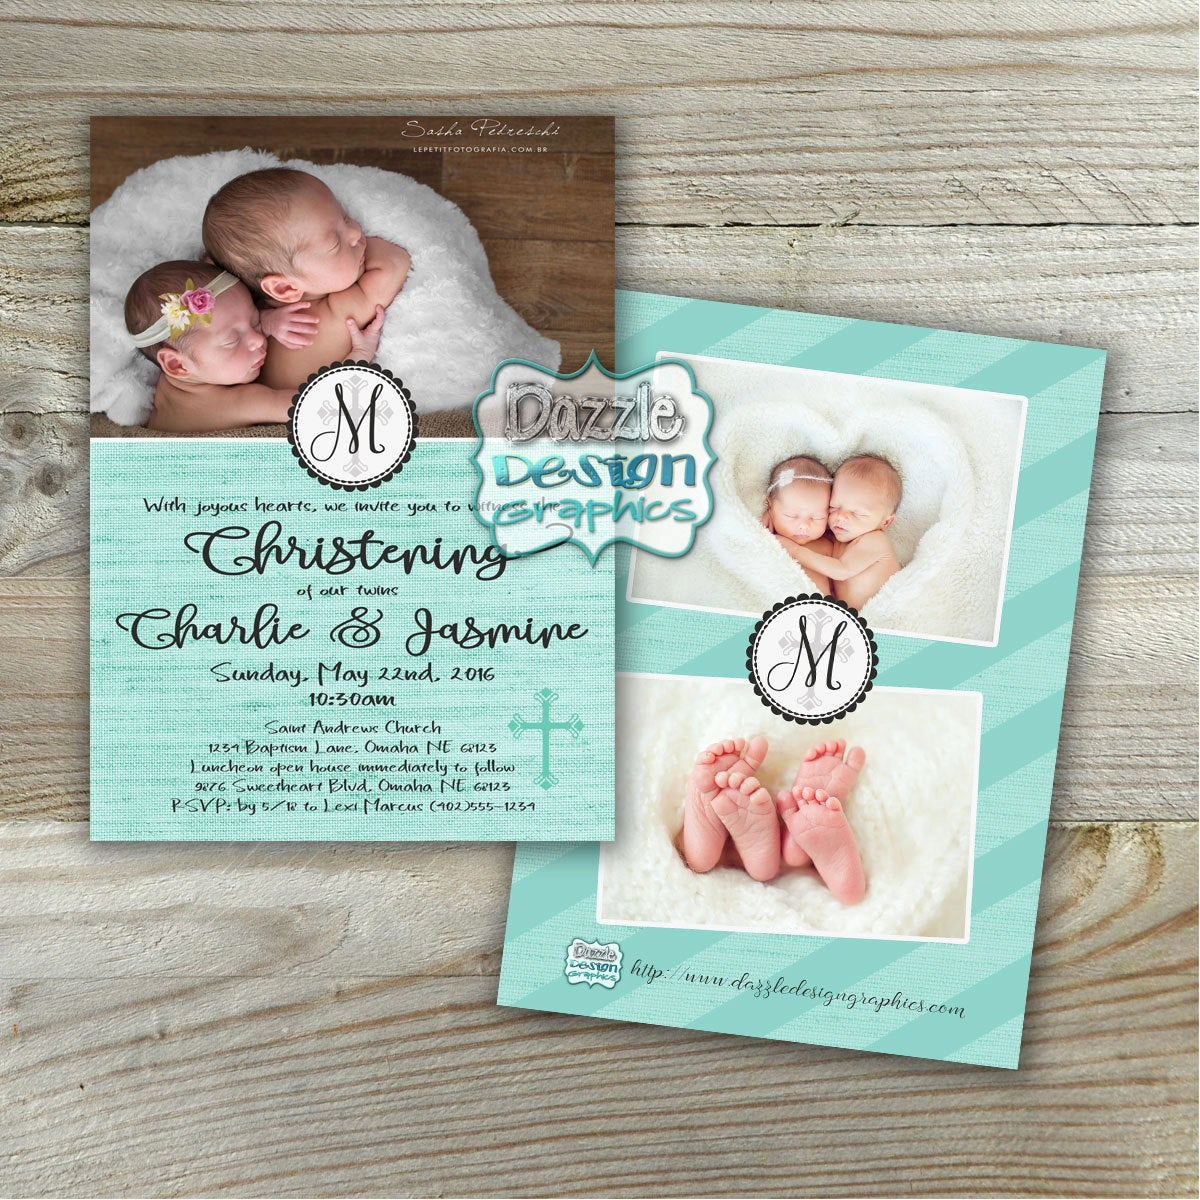 Christening and Birthday Invitation Luxury Baptism Invitation Christening Confirmation Invite Burlap